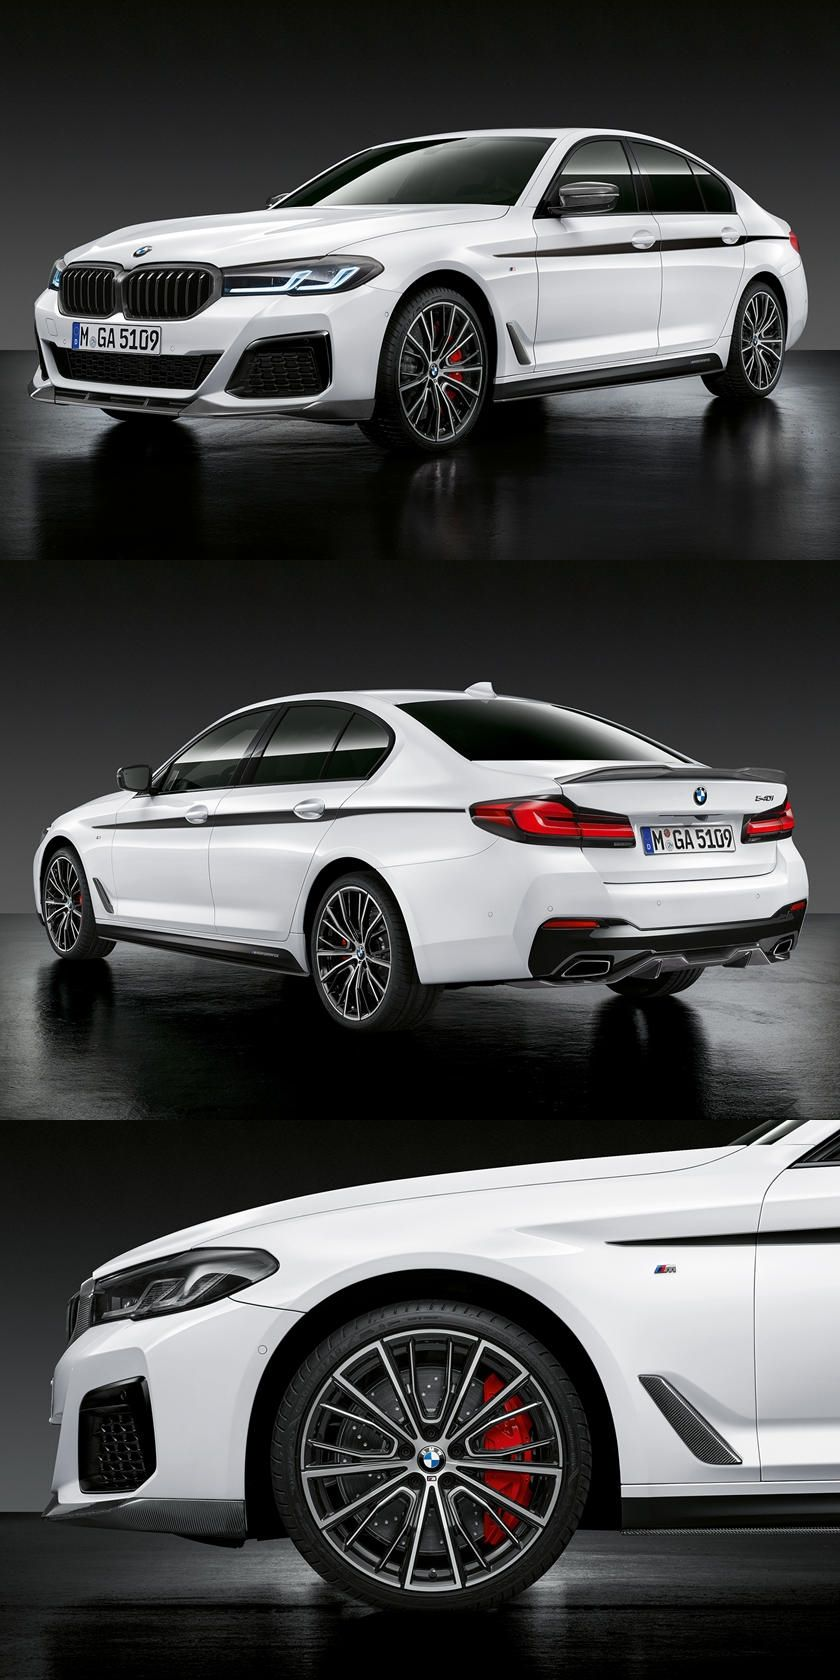 2021 Bmw M5 And 5 Series Get New M Performance Parts For A Whole New Look In 2020 Bmw Performance Parts Bmw M5